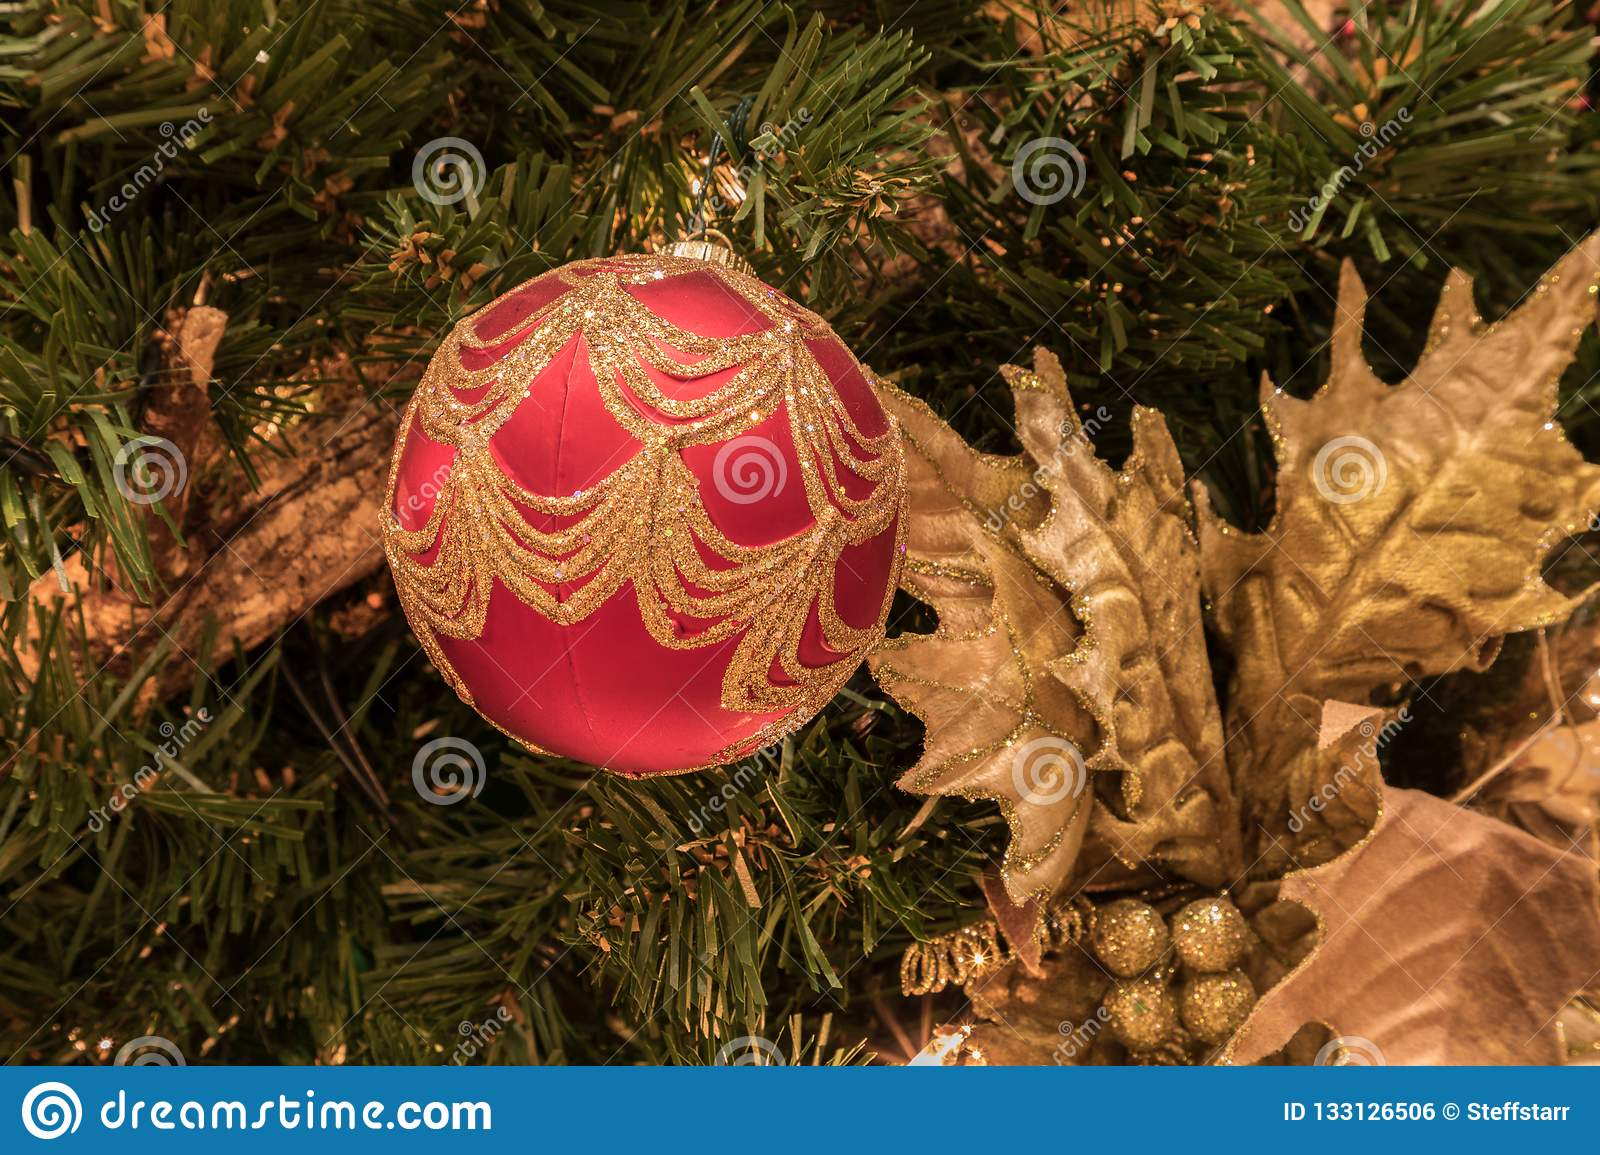 Red Ornament On A Christmas Tree With White Lights And Bows Stock Photo - Image of luxury, gift ...